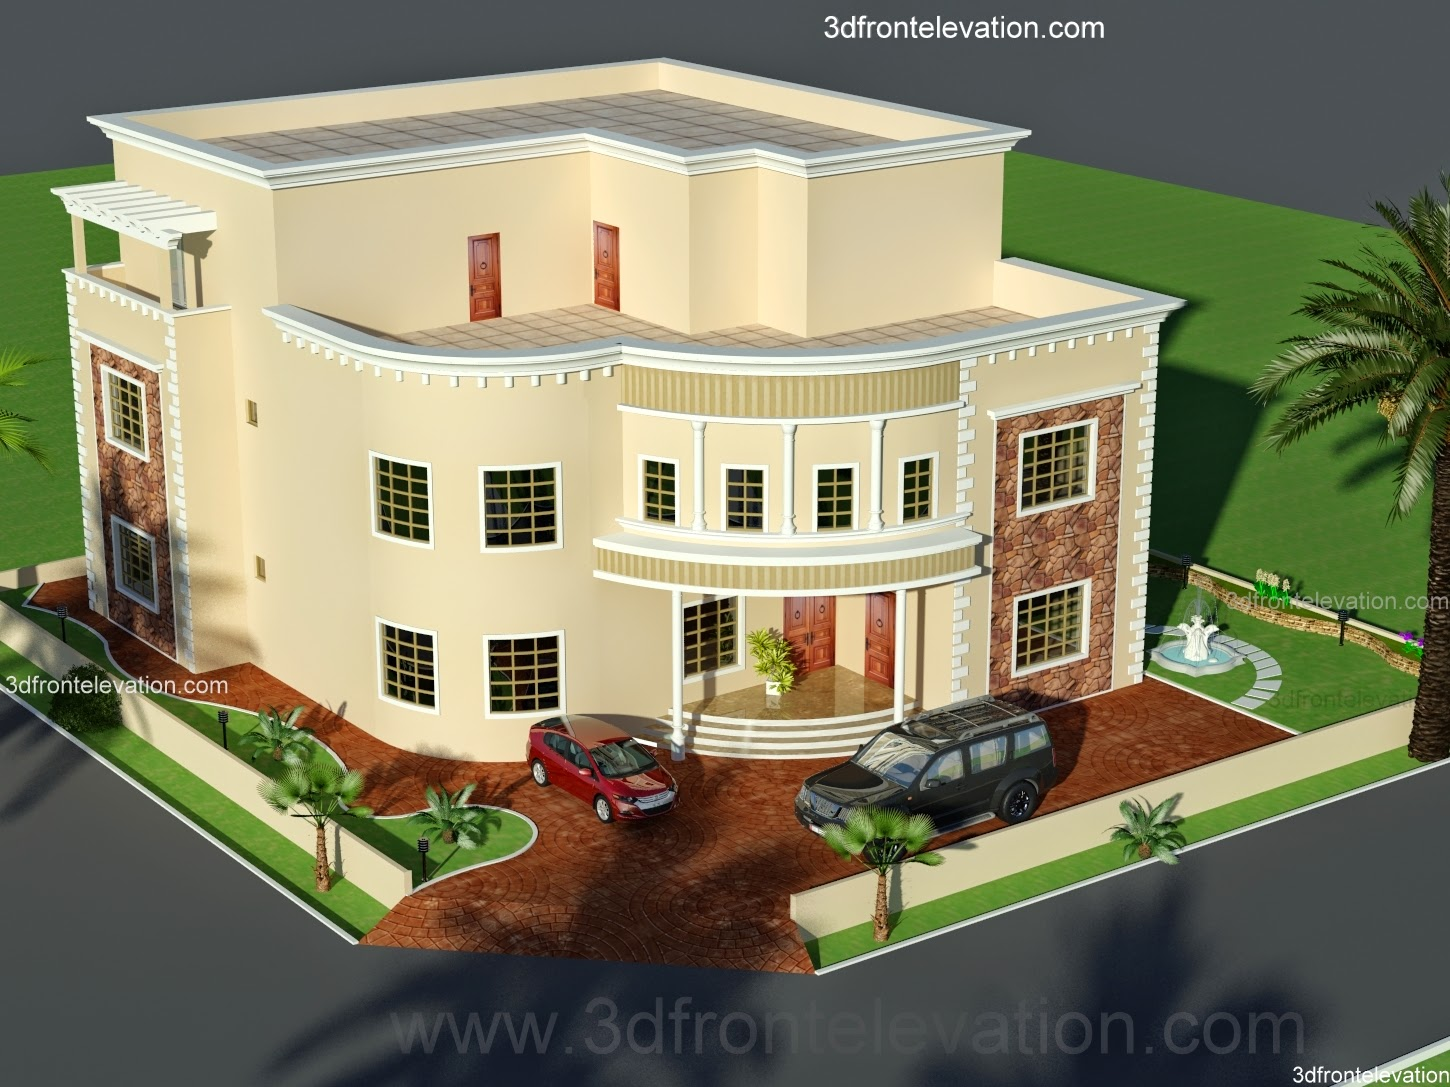 Front Elevation House Dubai : D front elevation oman new arabian villa plan design